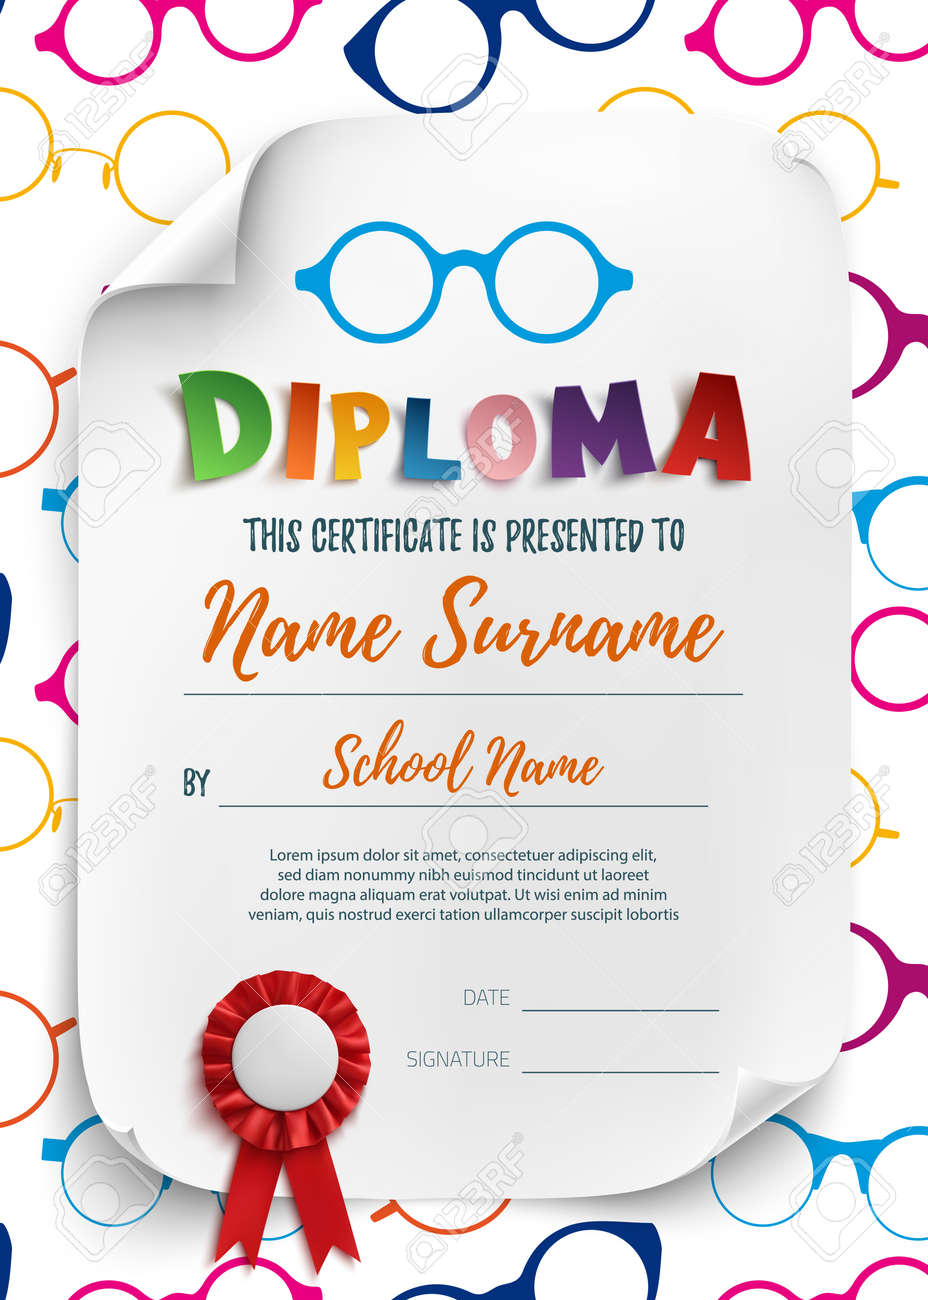 Diploma template for kids school preschool playschool diploma template for kids school preschool playschool certificate background wit colorful reading alramifo Images